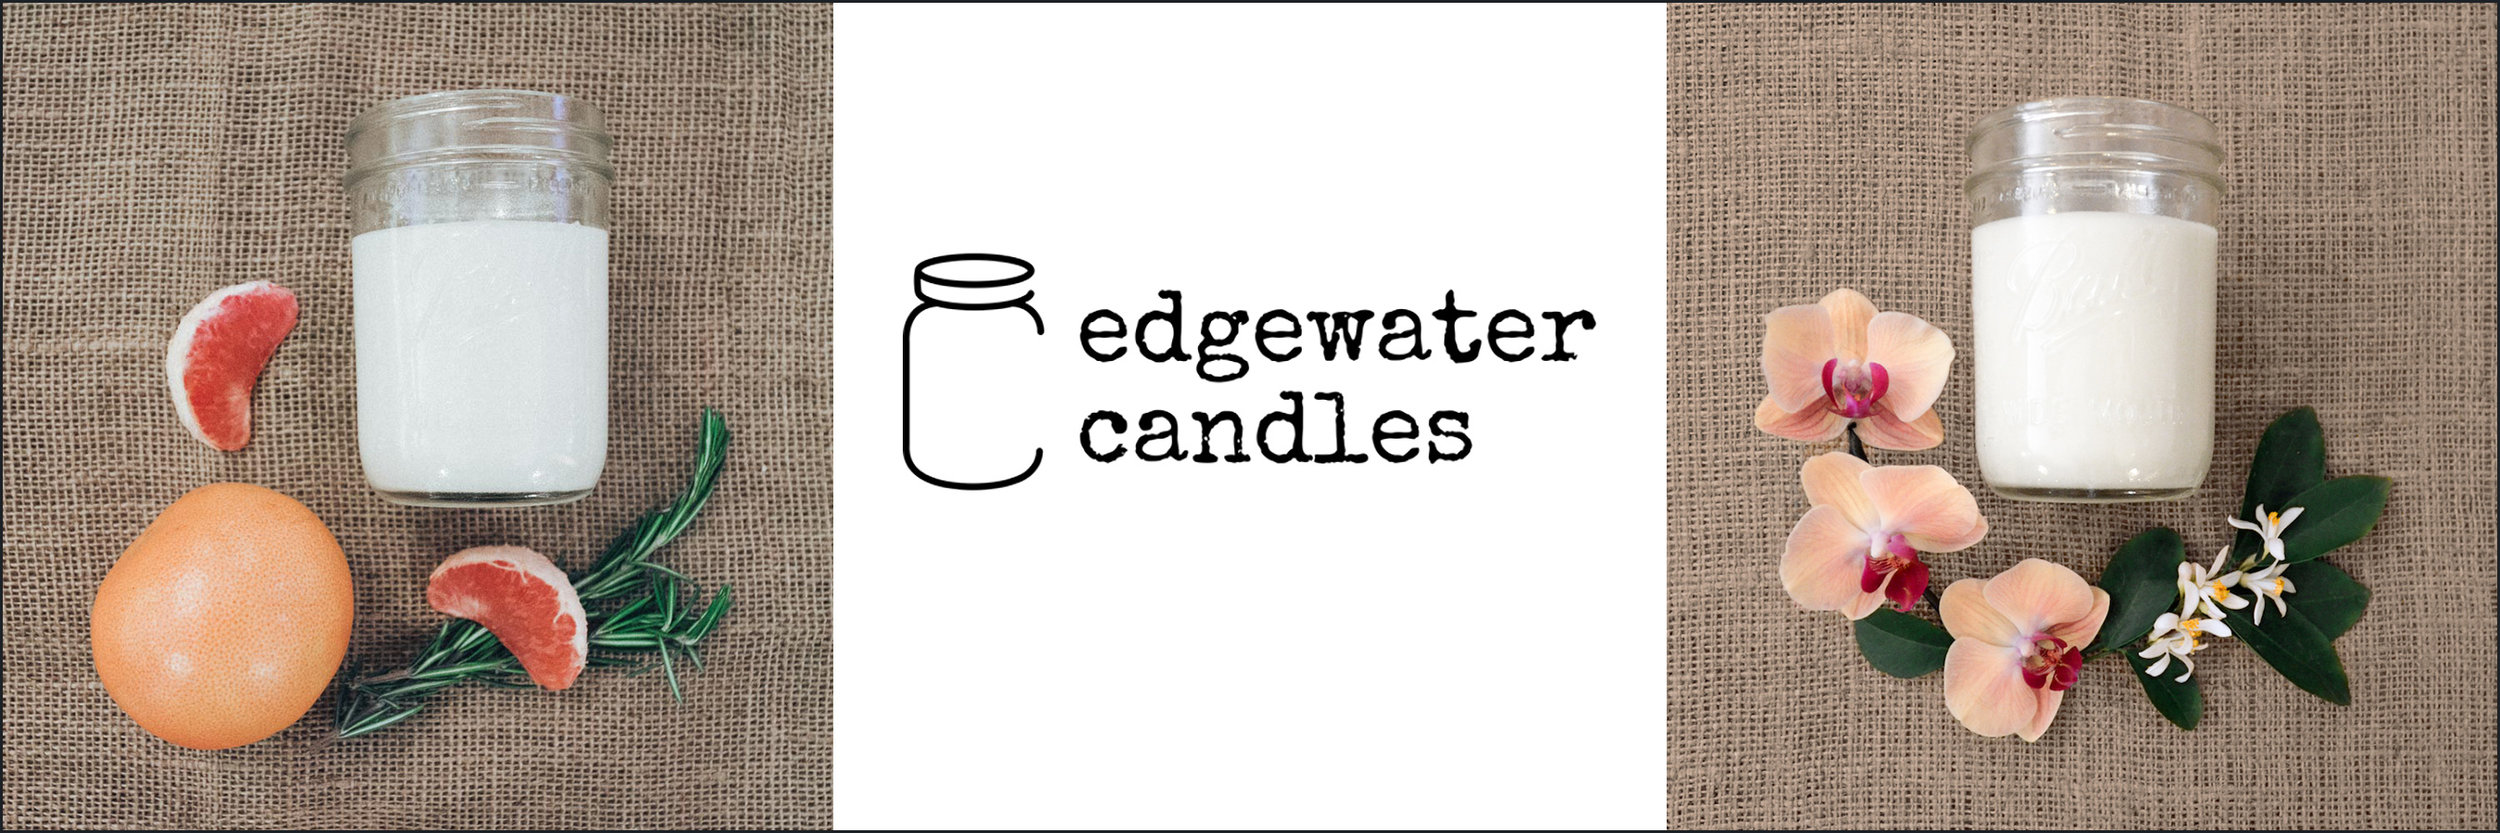 edgewater-candles.jpg